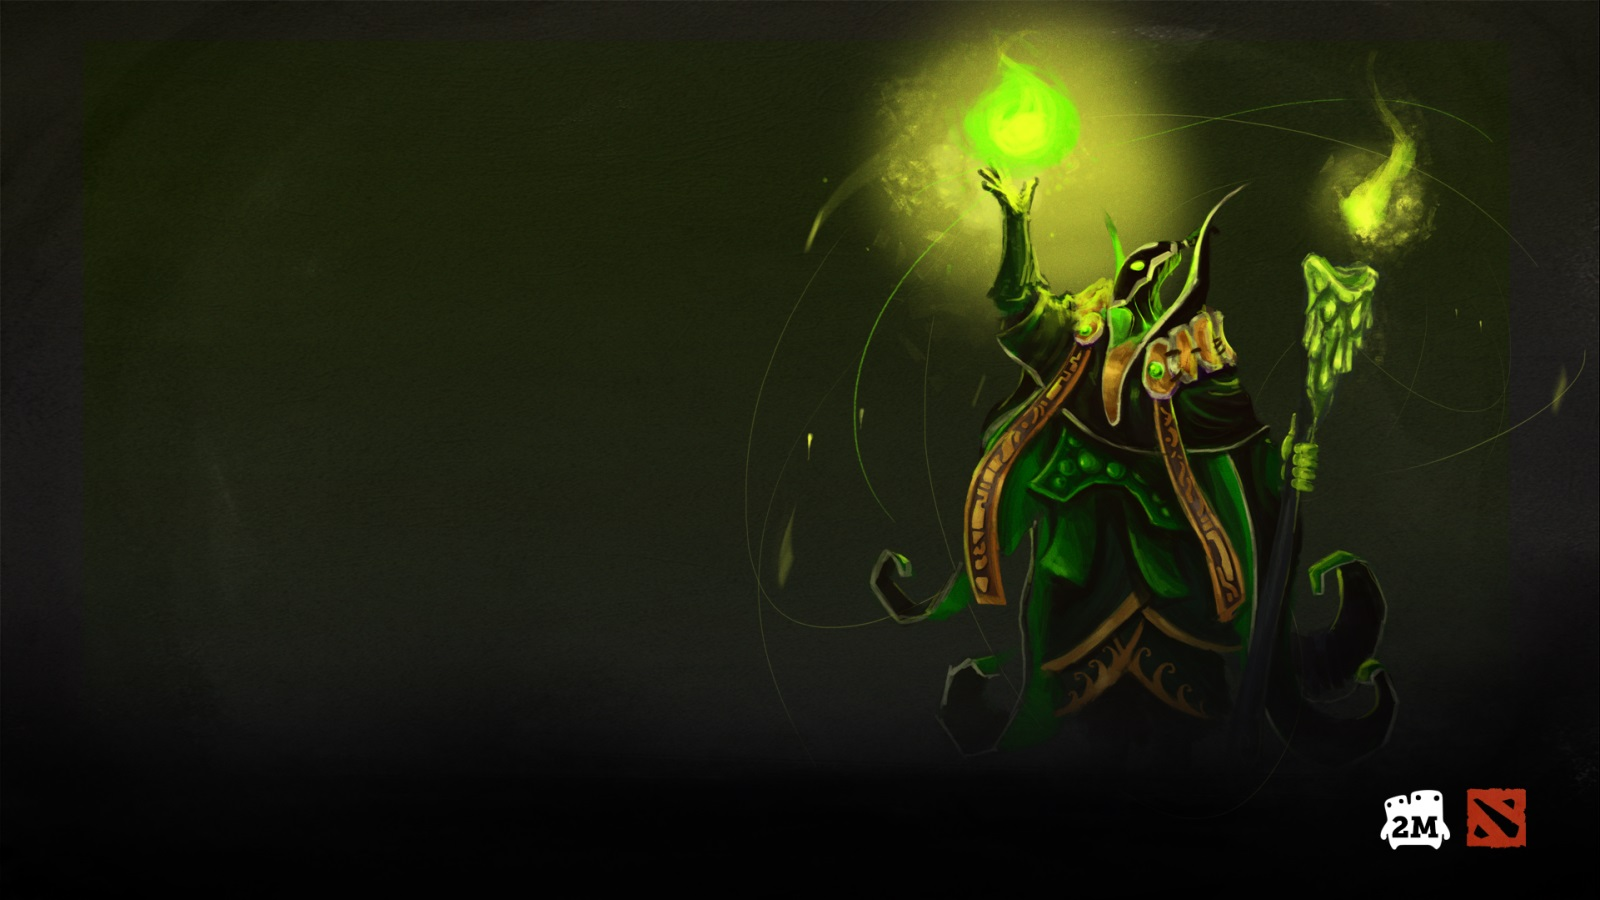 Rubick wallpaper for computer desktop Dota 2